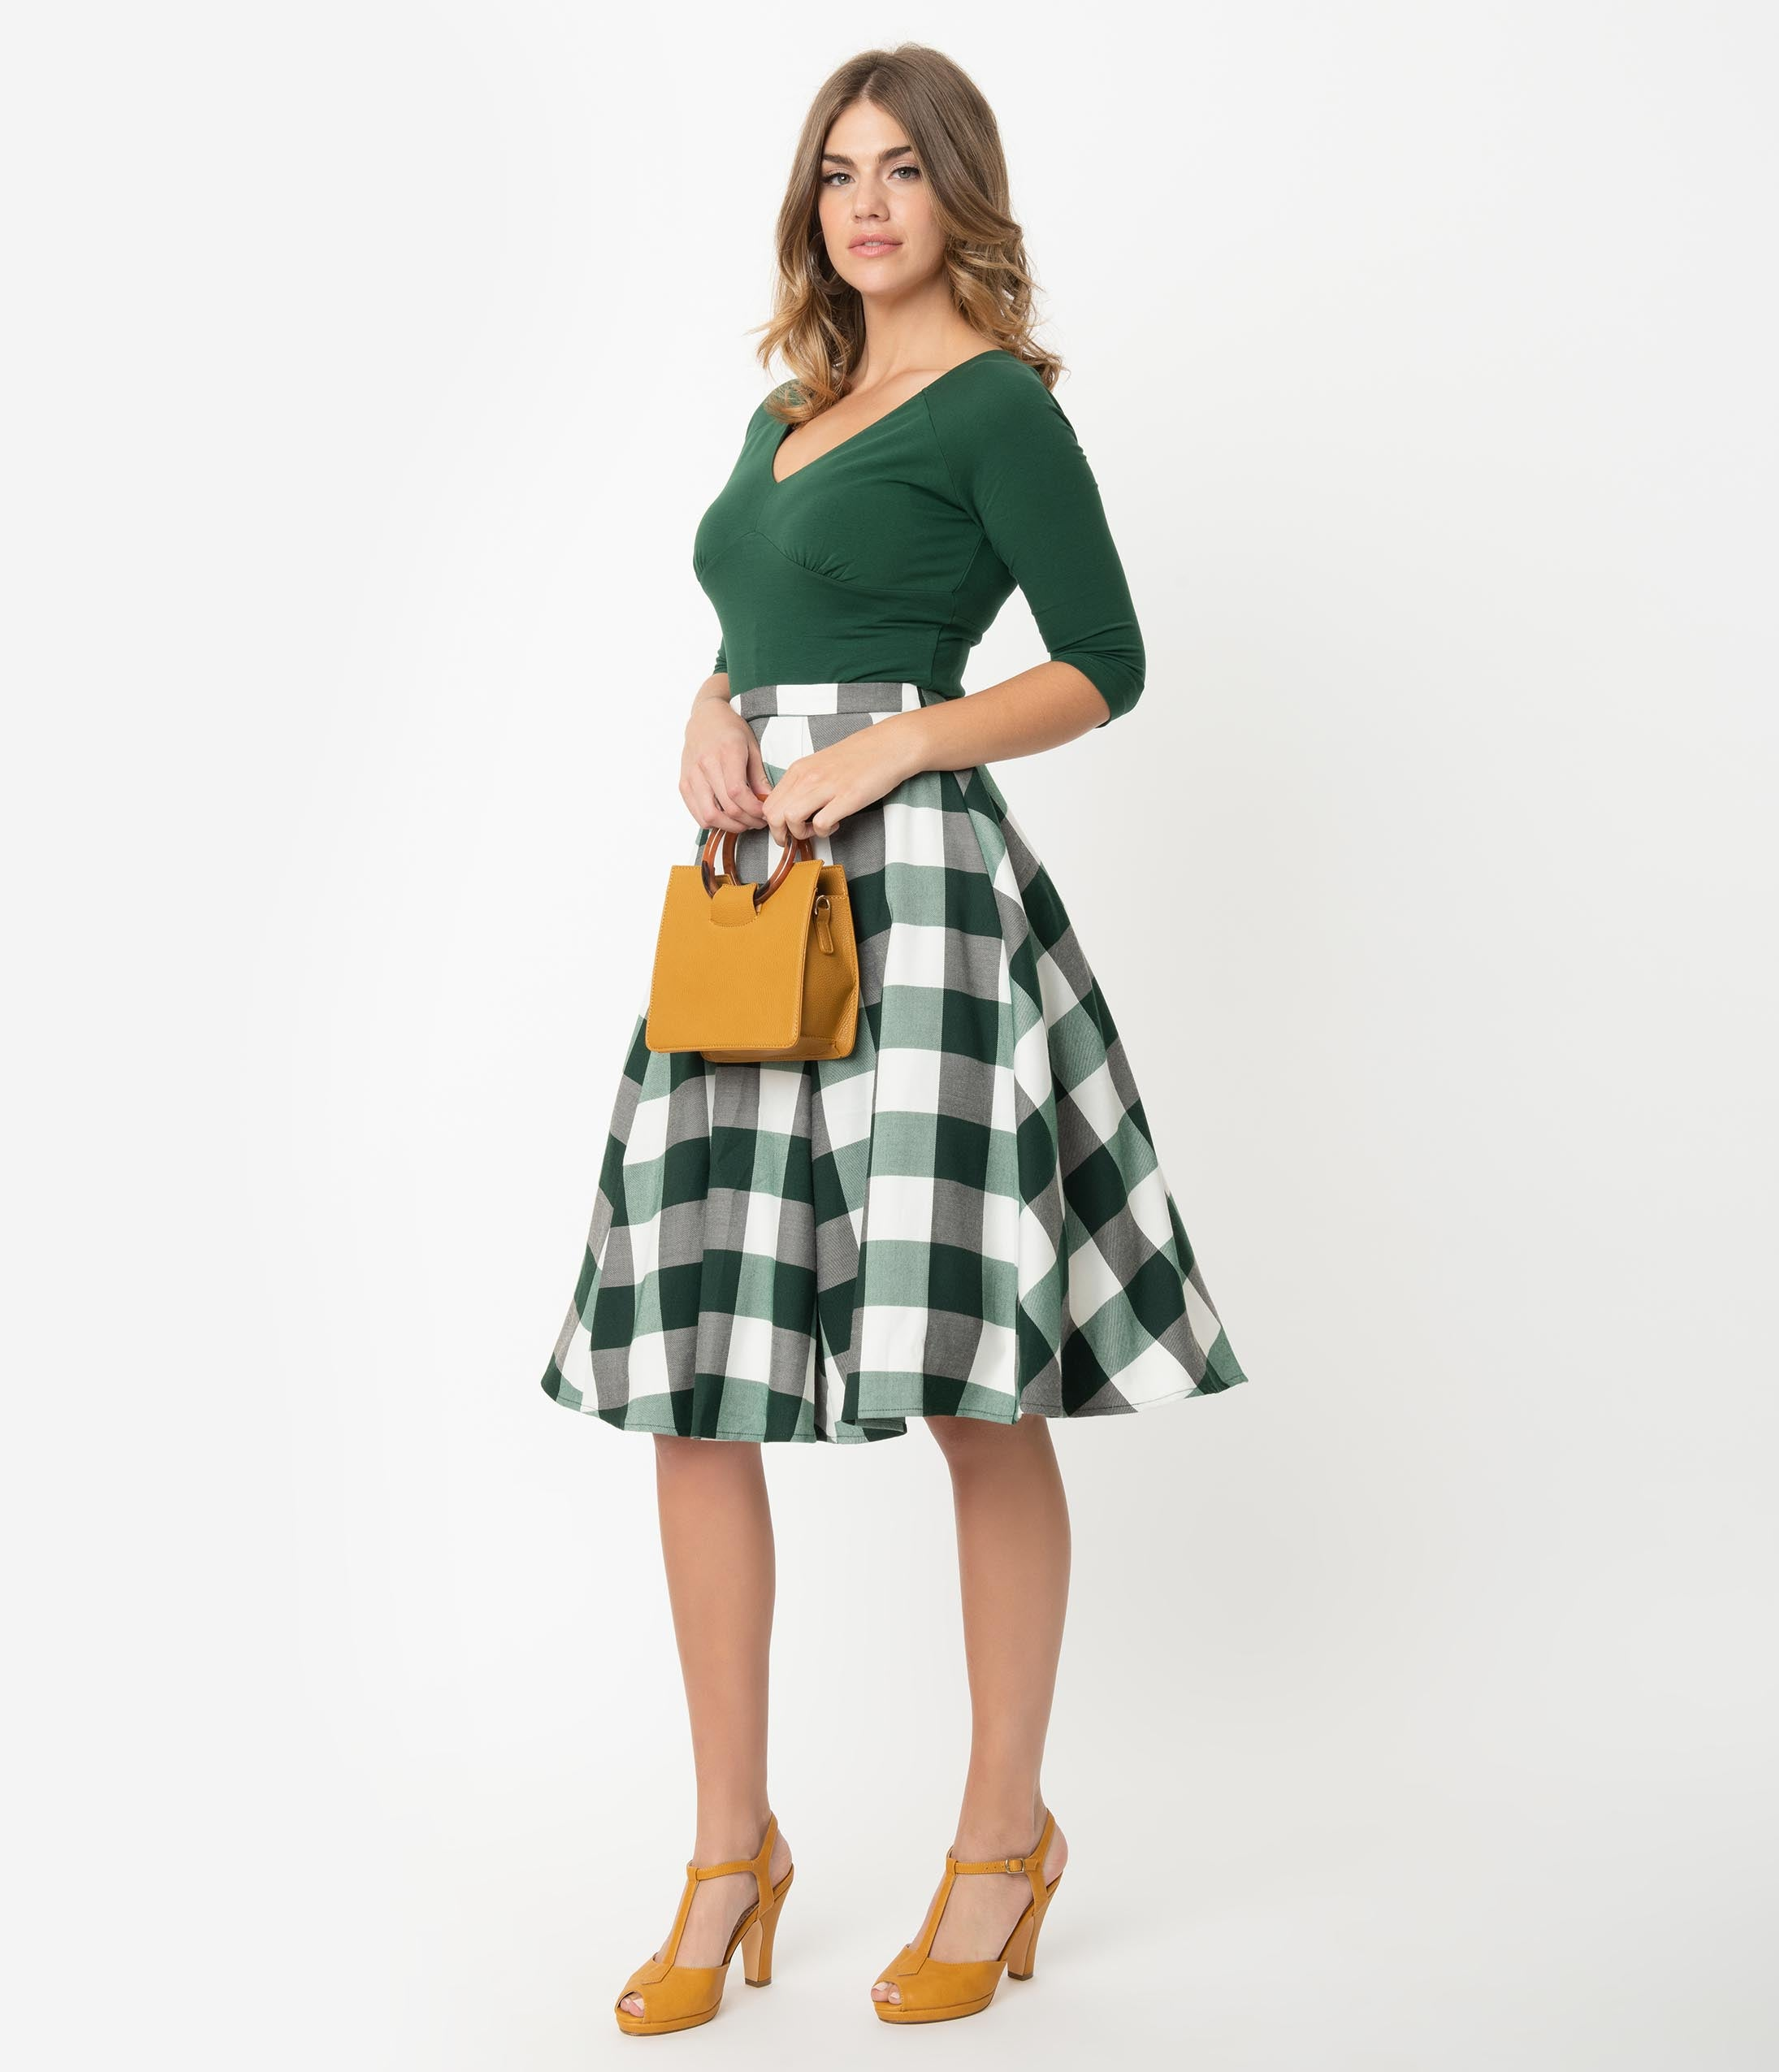 Retro Skirts: Vintage, Pencil, Circle, & Plus Sizes Collectif 1950S Style Green  White Gingham Matilde Swing Skirt $52.00 AT vintagedancer.com